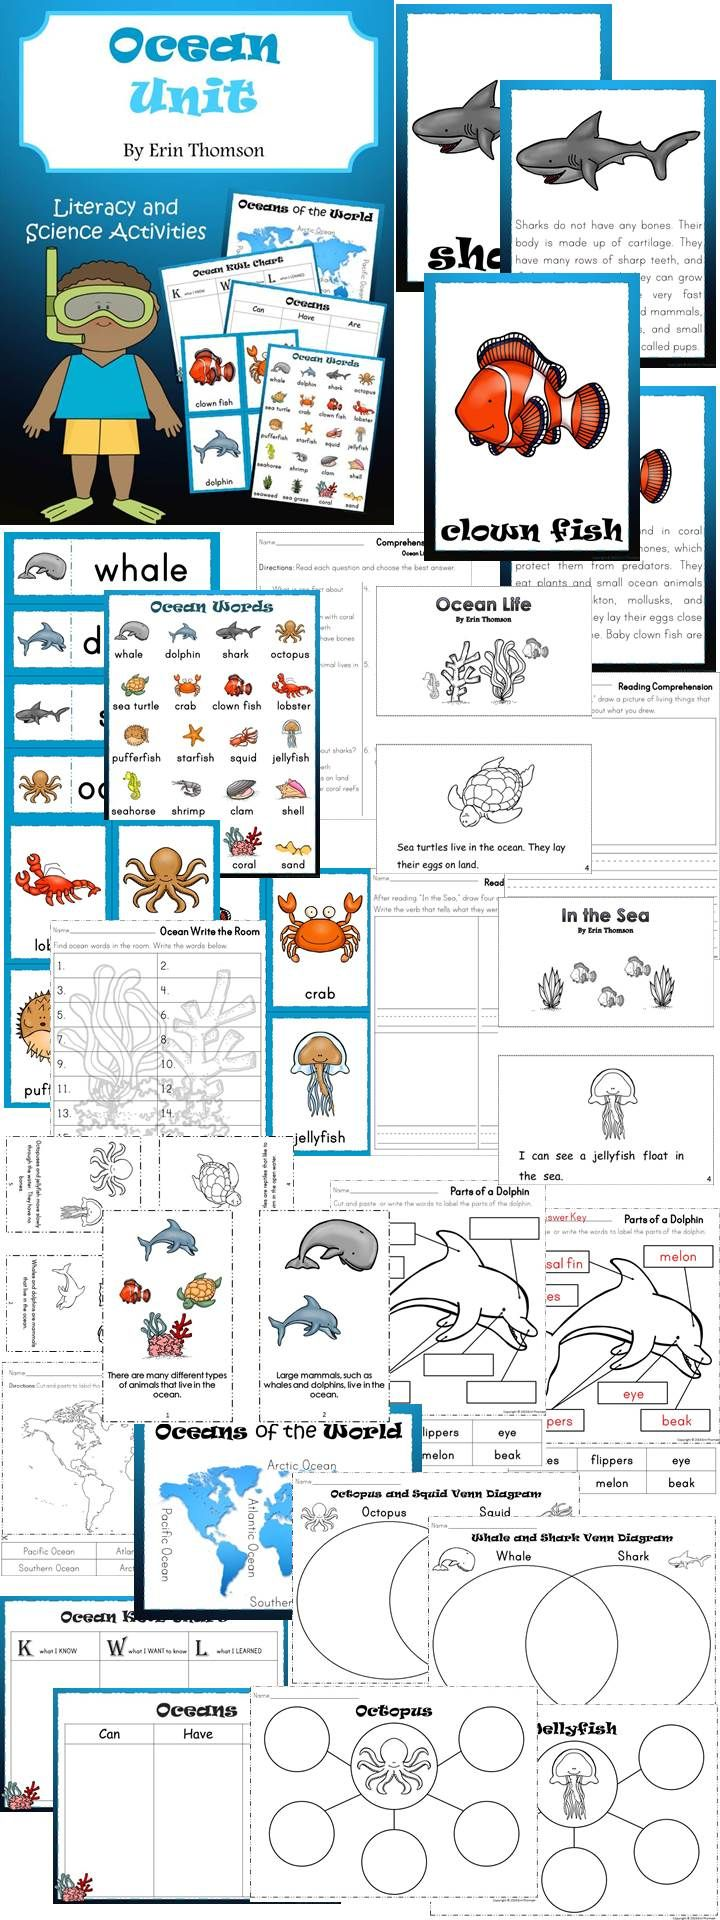 ocean unit literacy and science activities animal facts